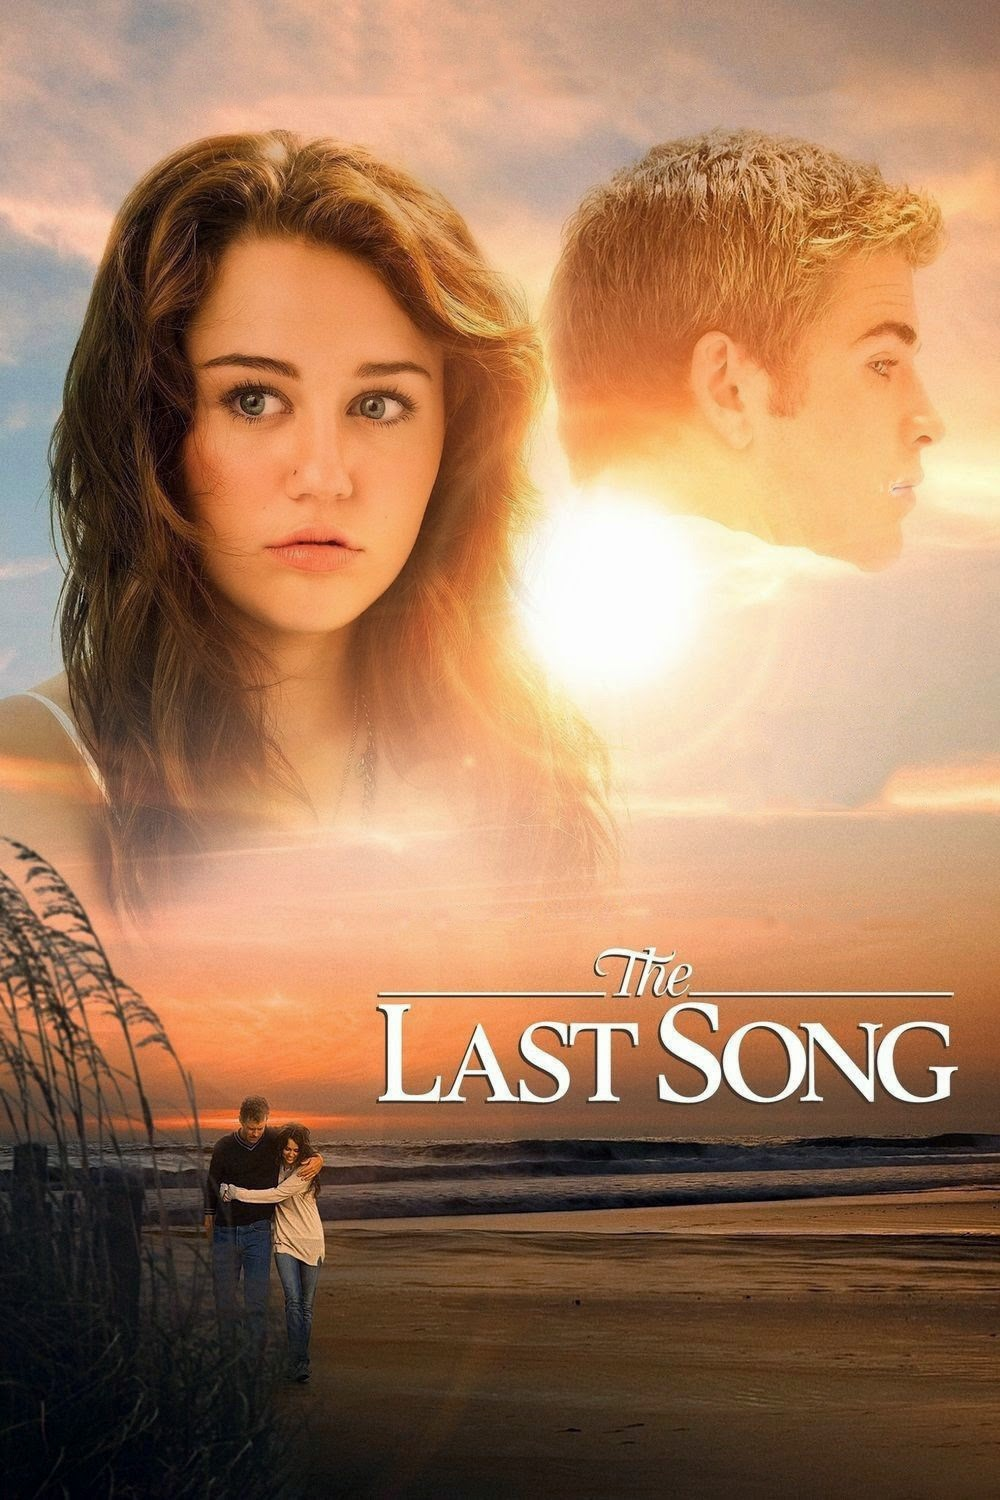 The Last Song 2010 - Full (HD)